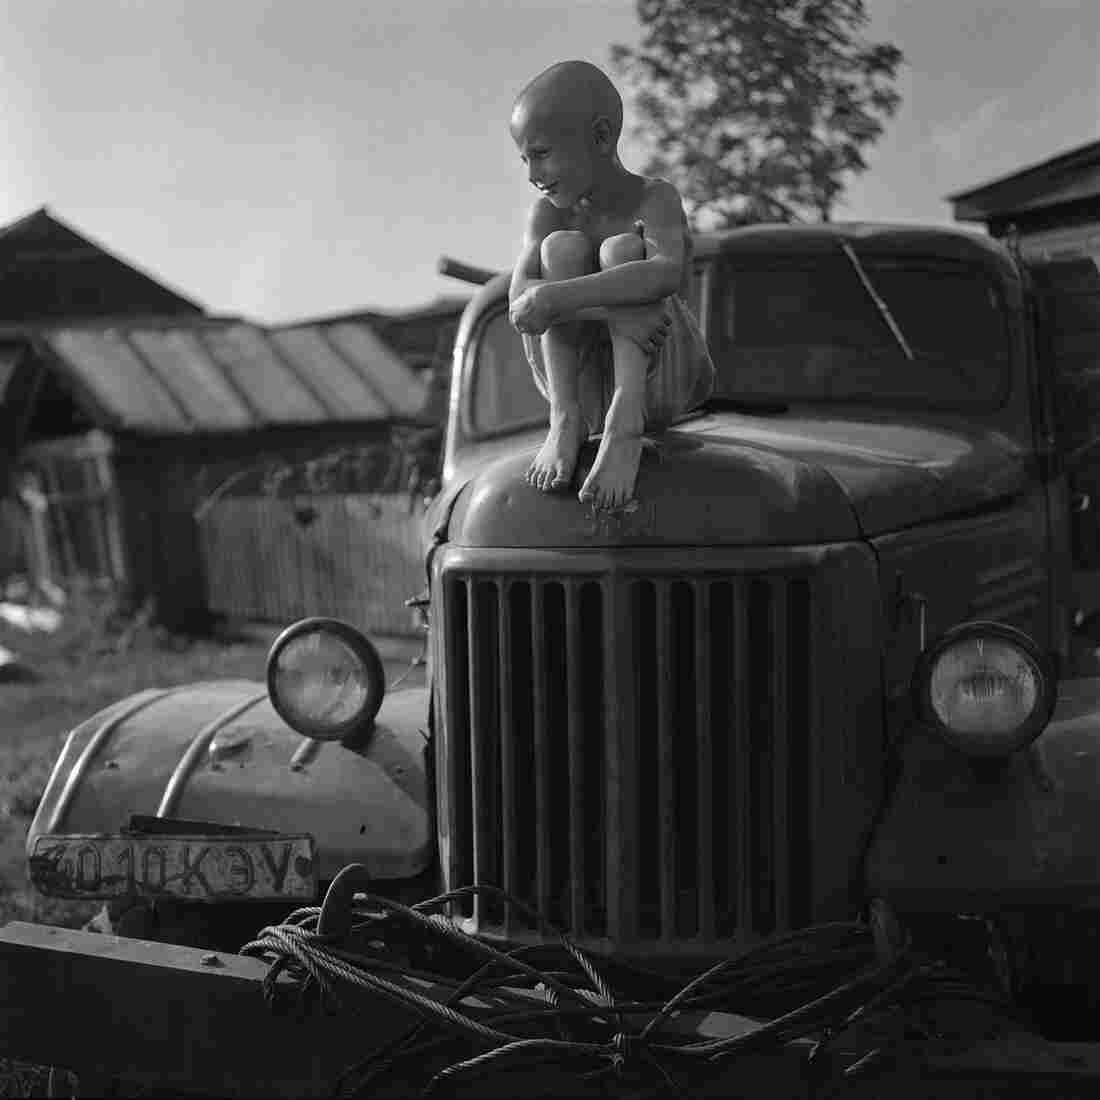 A boy named Zahar sits on an old car in a village called Rossiyka near Krasnoyarsk.